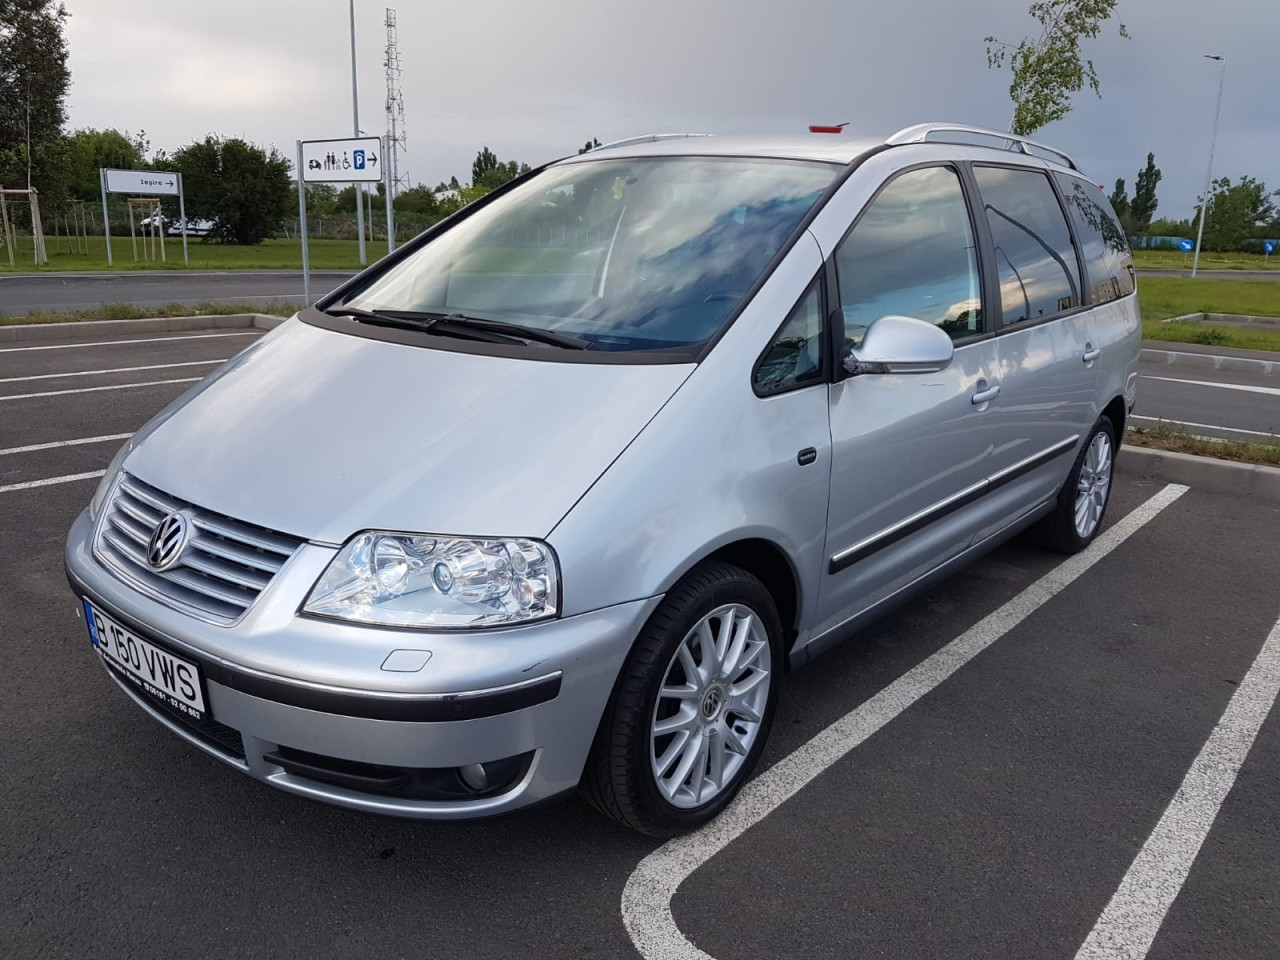 VW Sharan 2.0 TDI Euro 4 an 2008